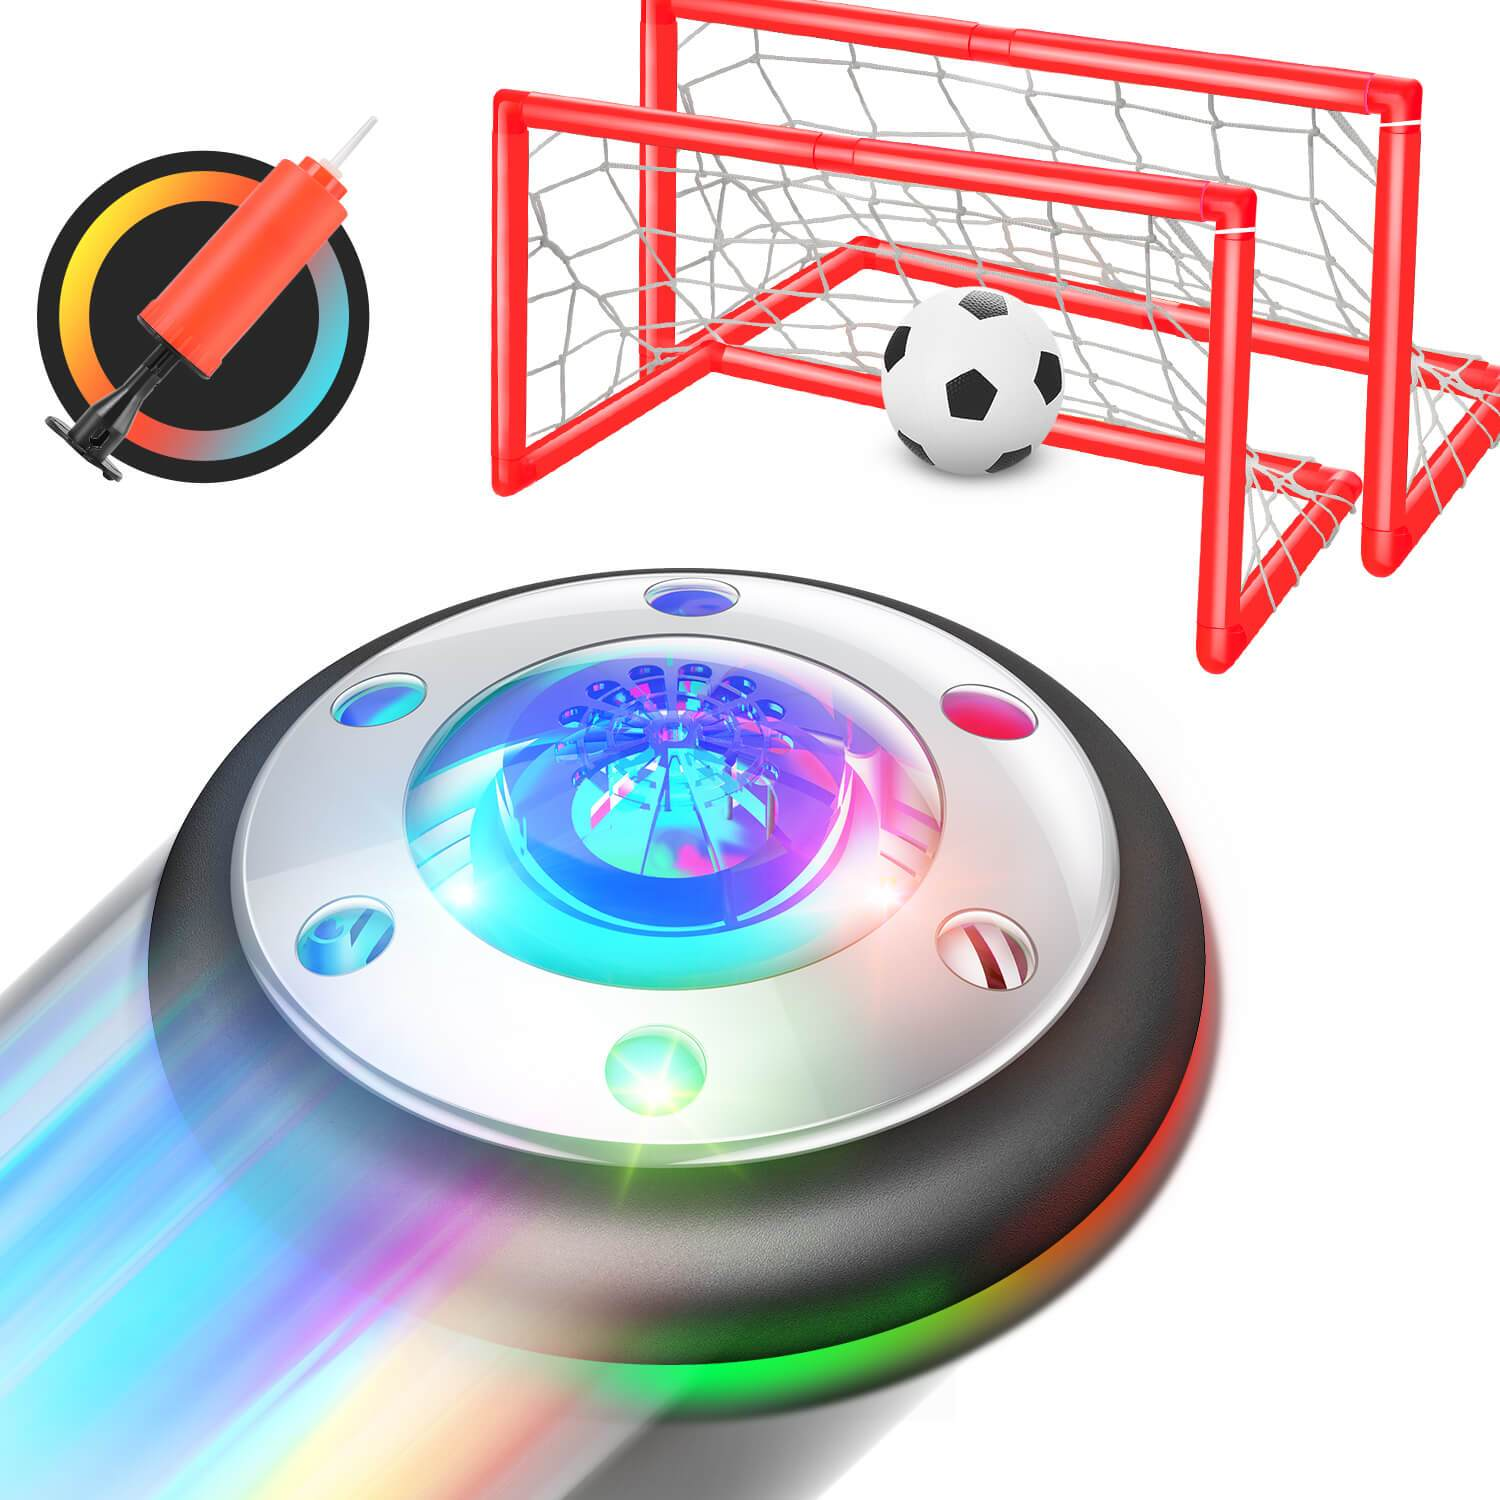 Geospace Hover Soccer Deluxe Air Hockey Game